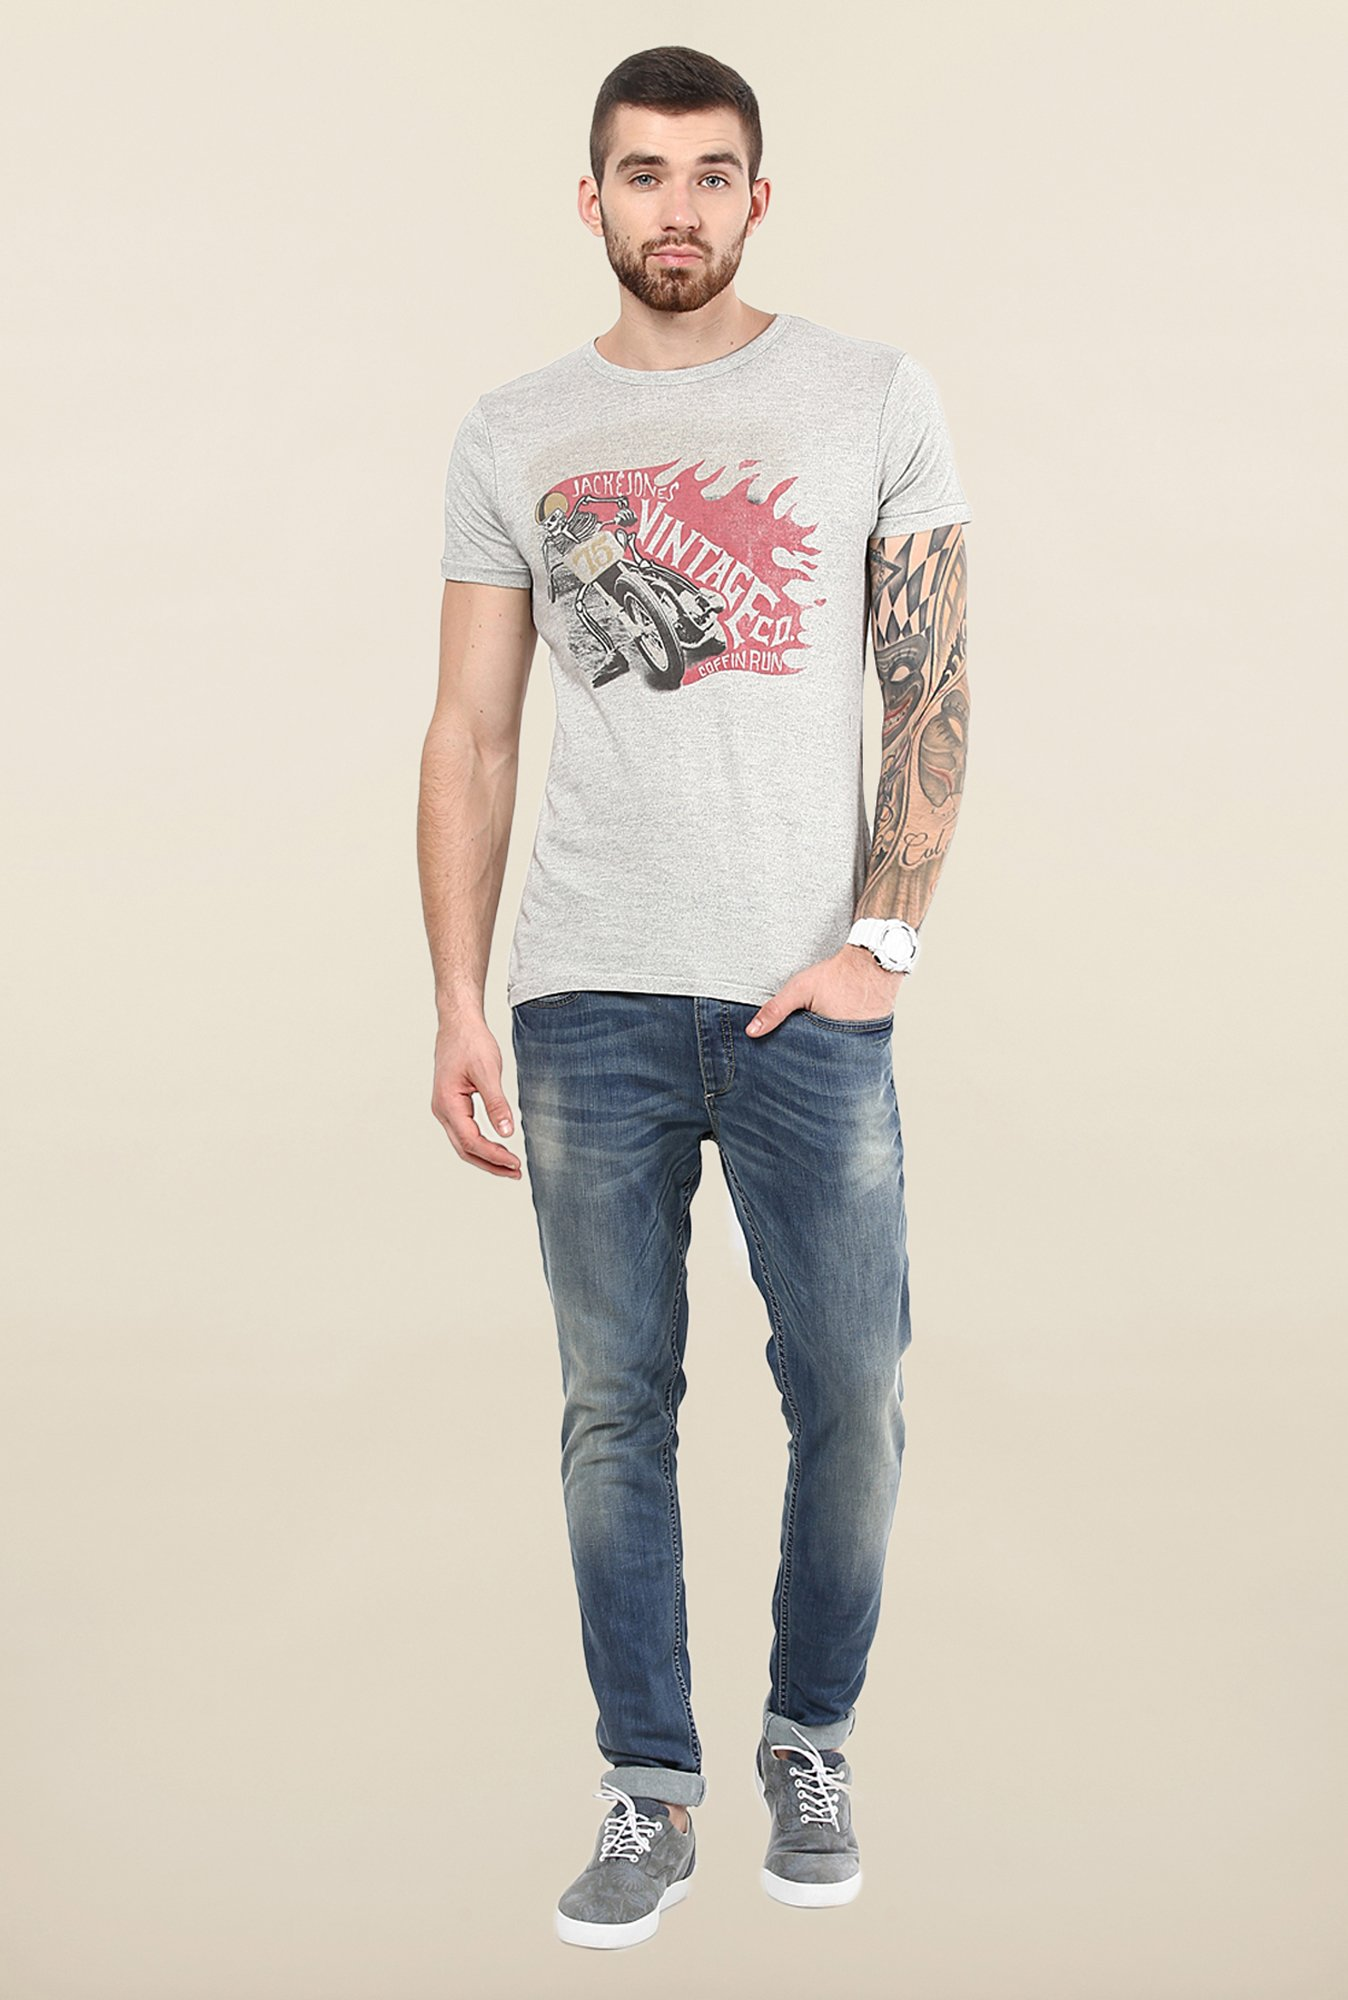 Jack & Jones Light Grey Crew Neck T-Shirt